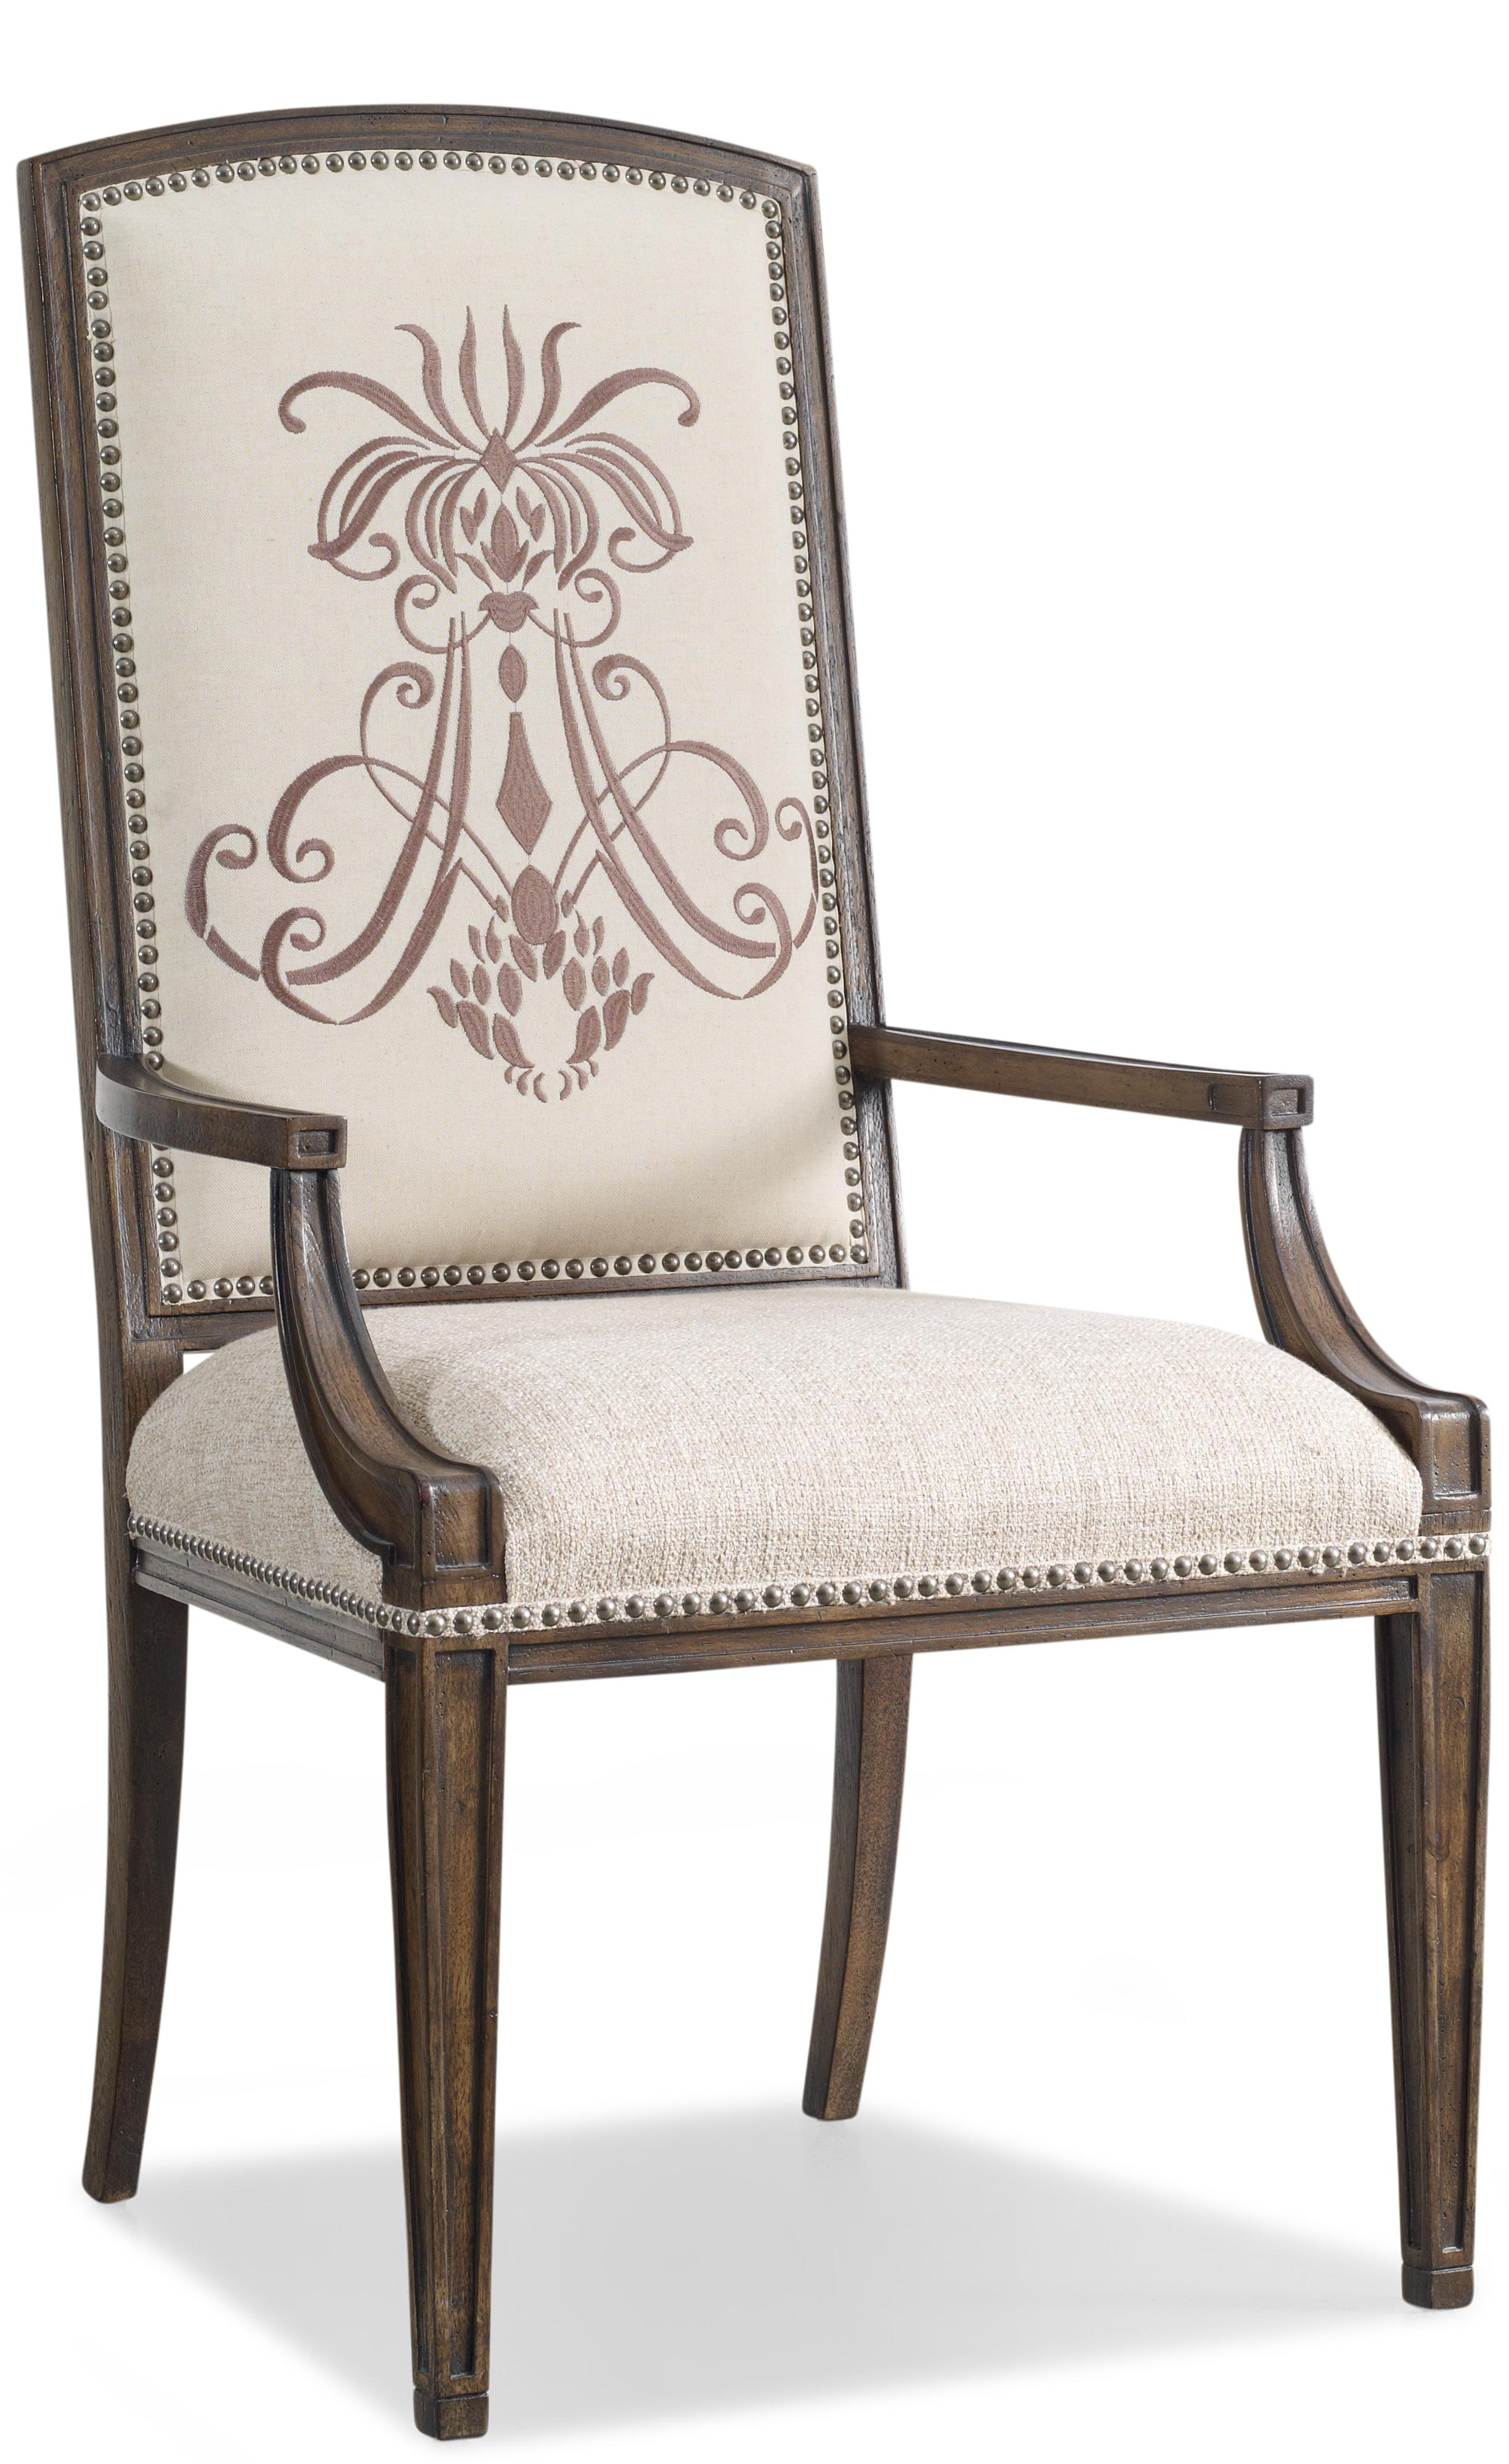 Hooker Furniture Rhapsody Insignia Arm Chair - Item Number: 5070-75400